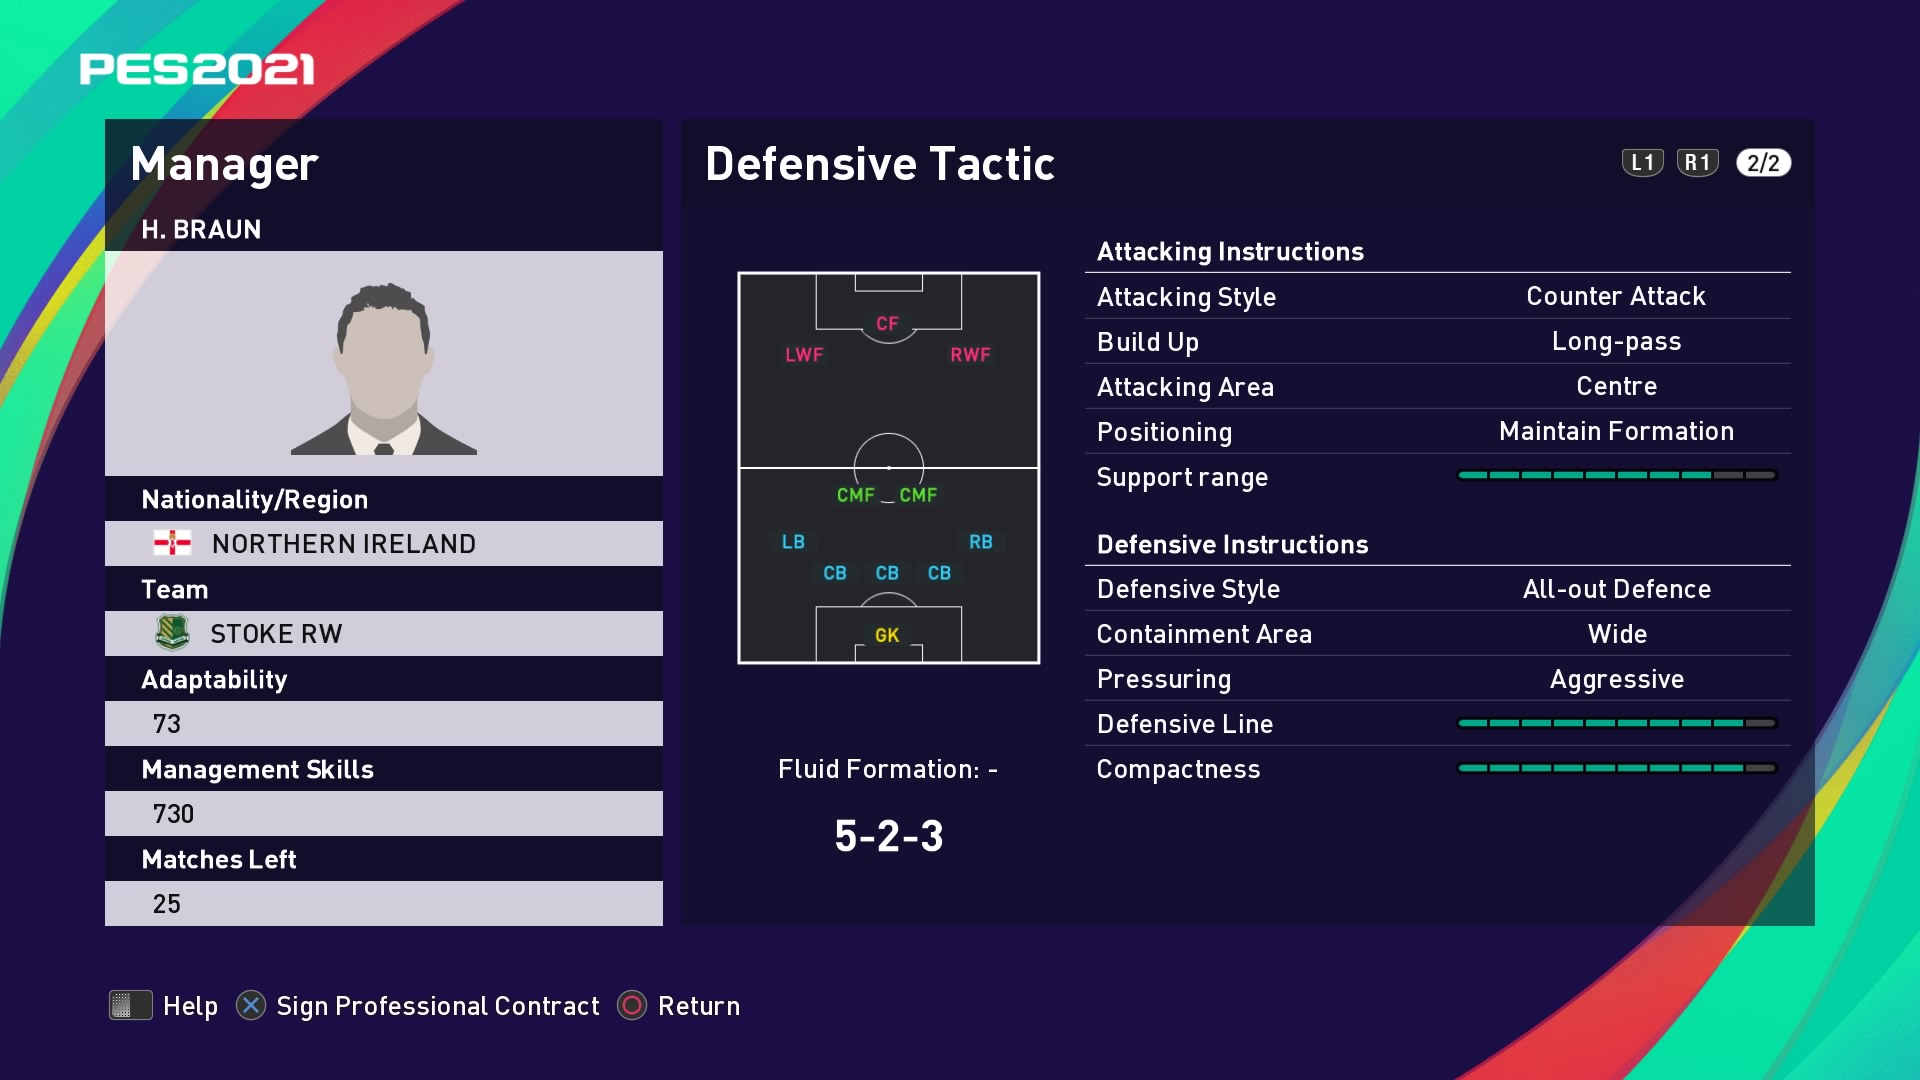 H. Braun (Michael O'Neill) Defensive Tactic in PES 2021 myClub